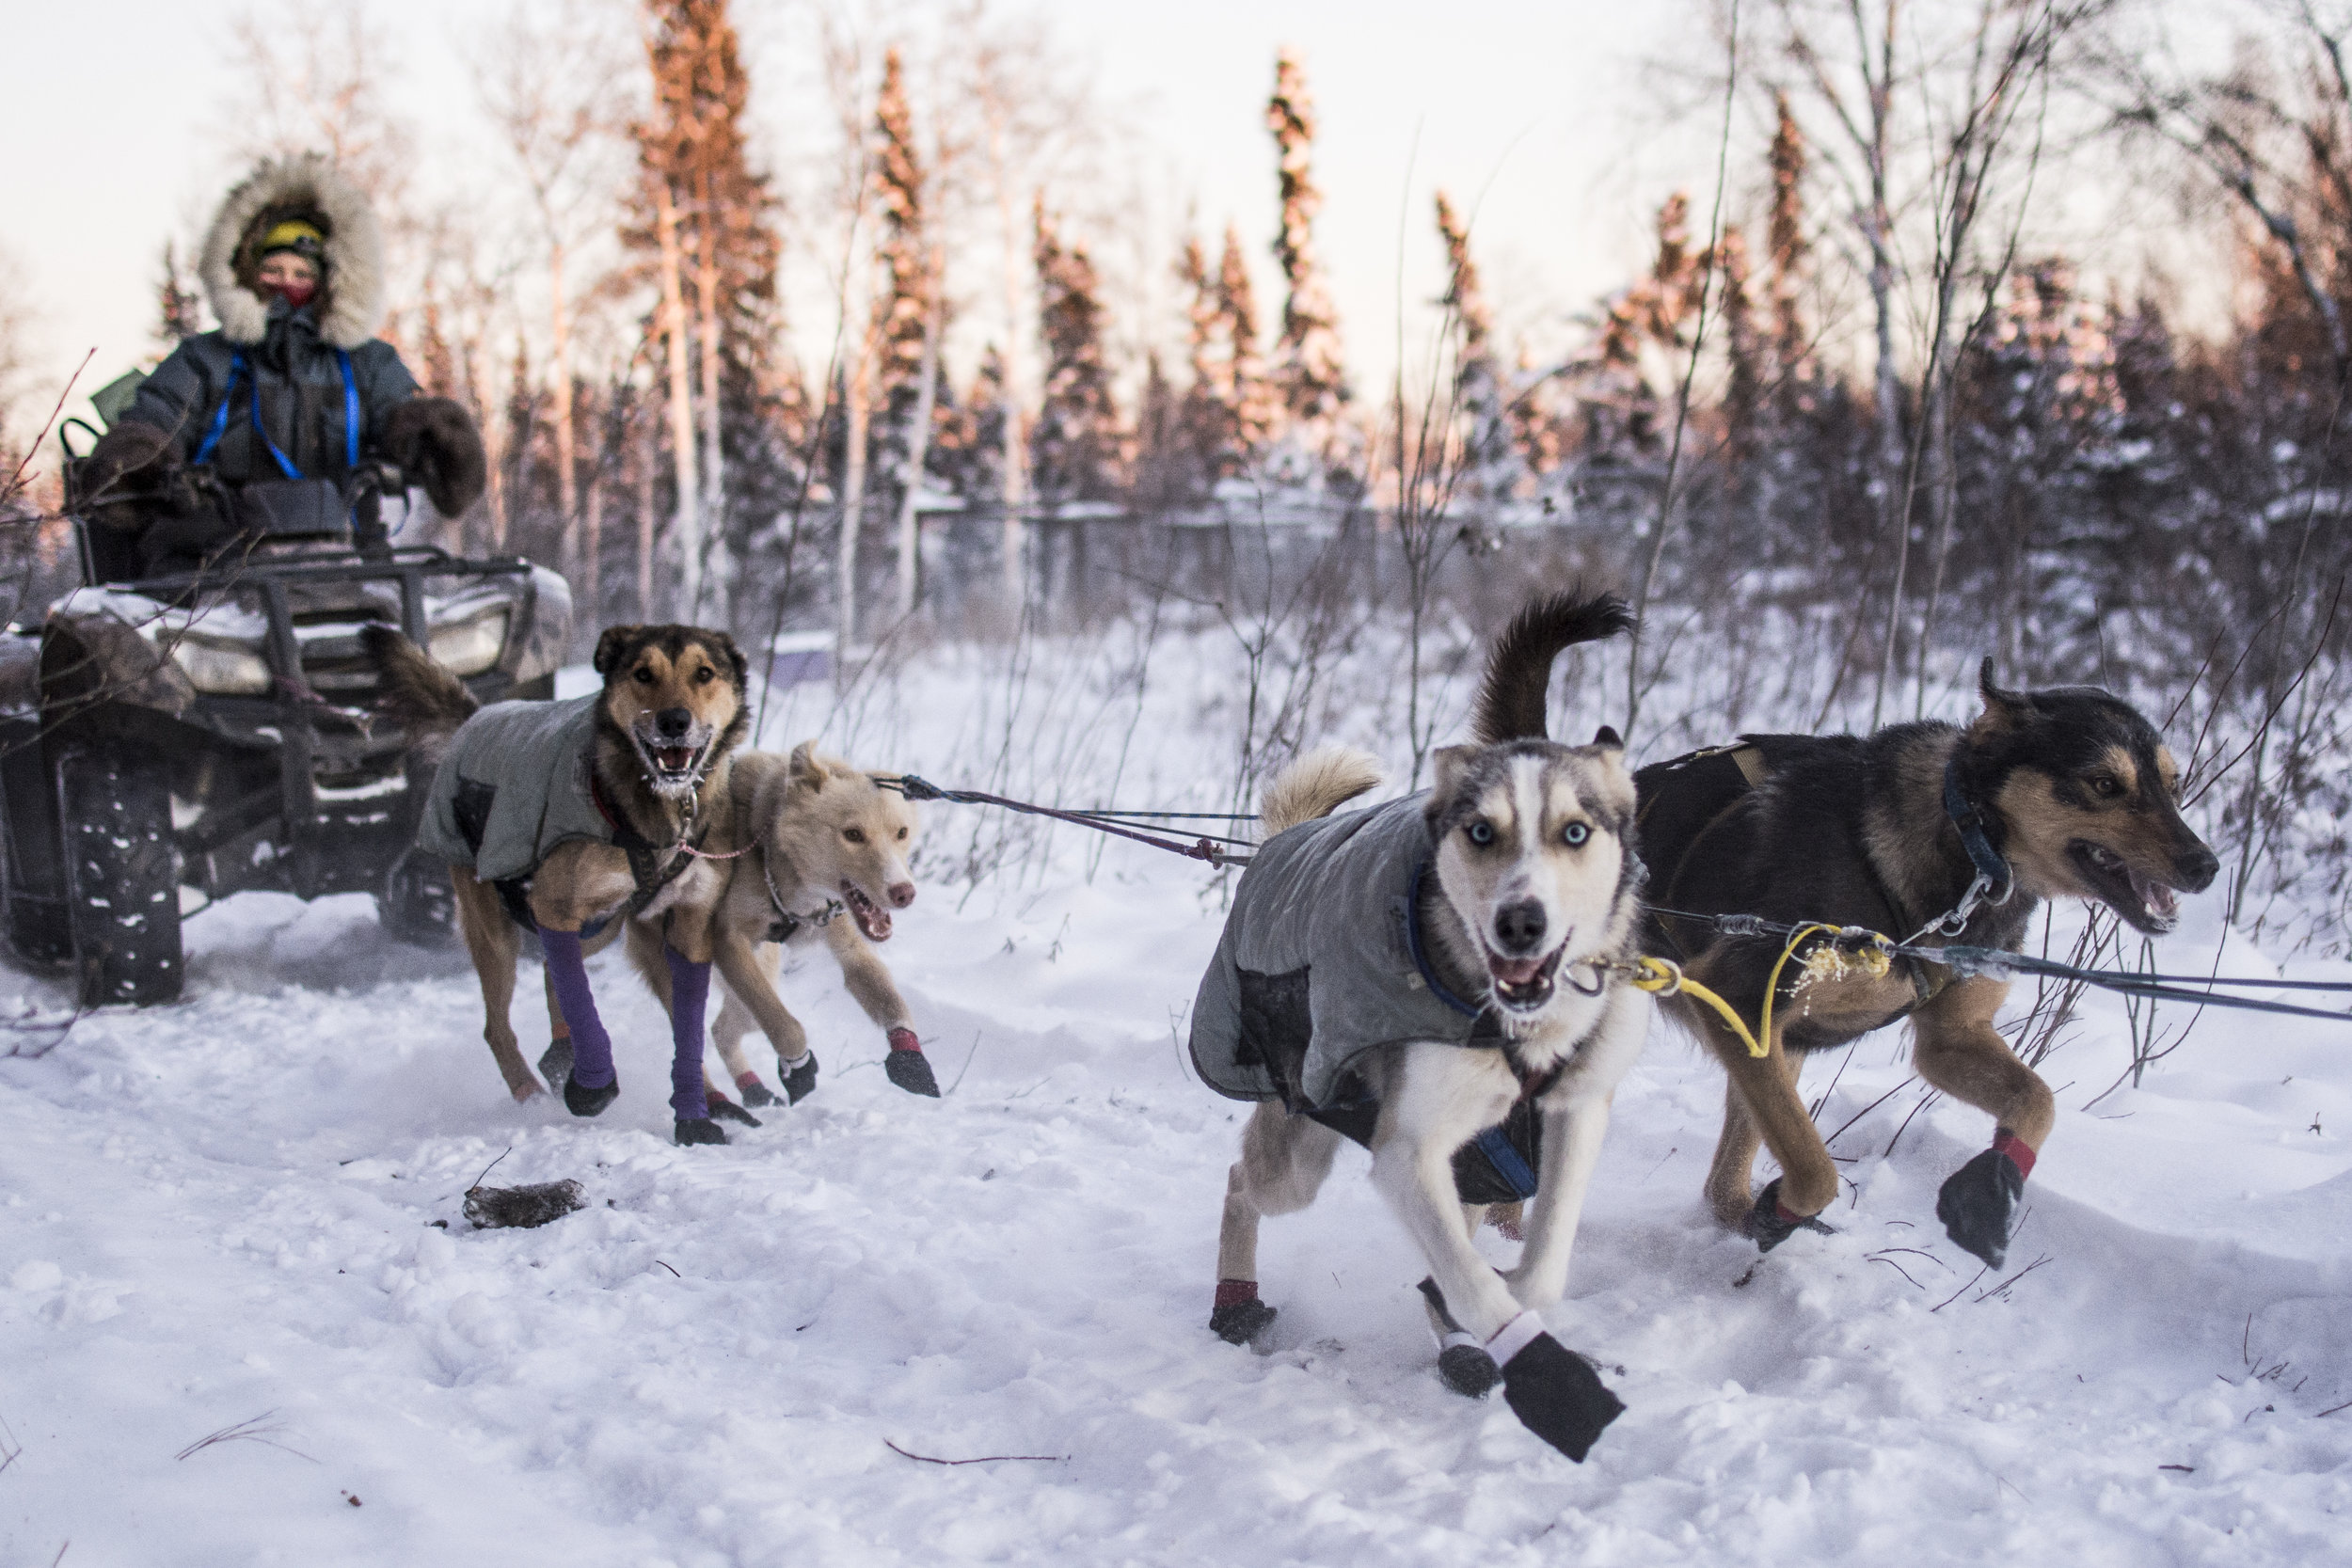 Wingman and Ewok followed by Rucu and Wombat. Currently we can run 8-10 dog teams on sleds, otherwise, we're on the ATVs.